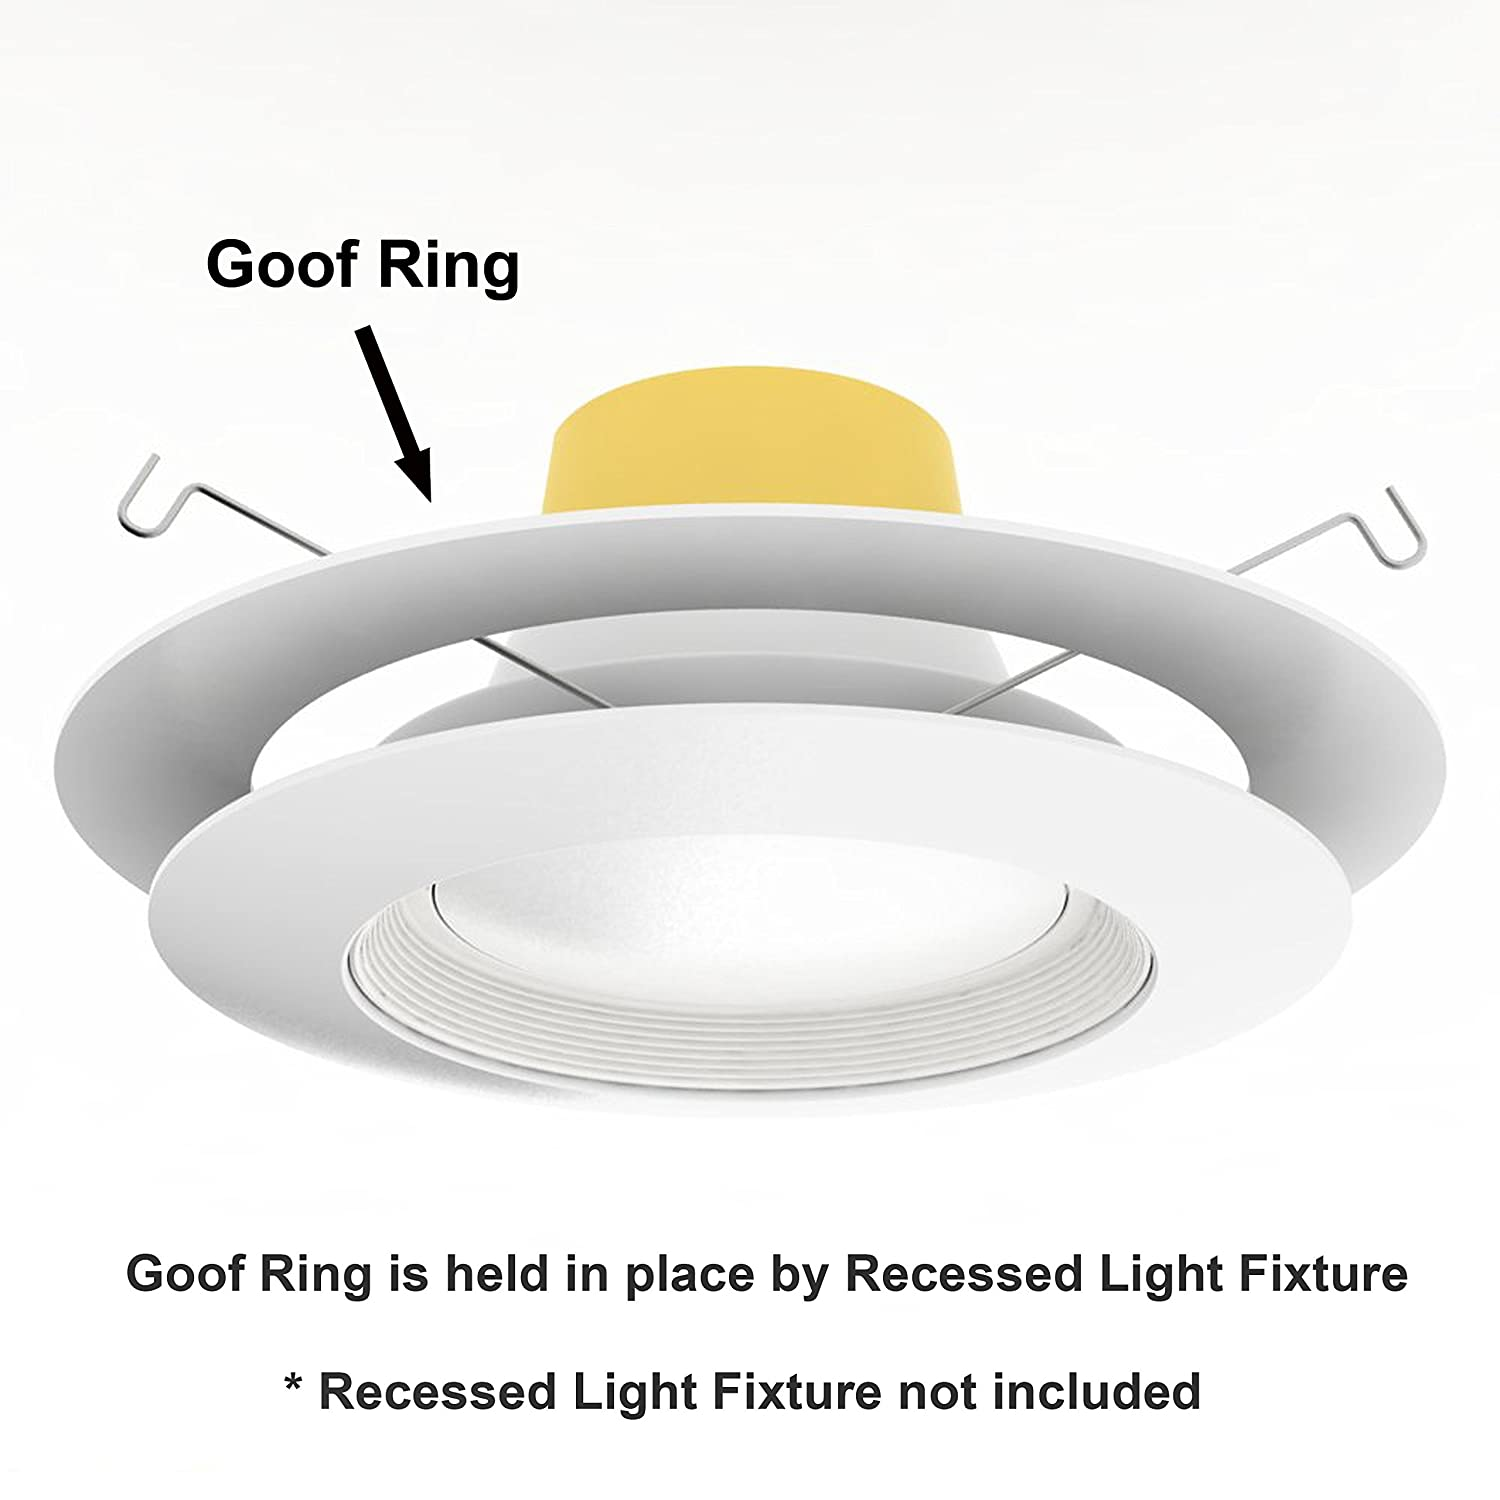 10 pack white goof ring trim ring for recessed can and 6 inch 10 pack white goof ring trim ring for recessed can and 6 inch down light ove amazon mozeypictures Choice Image